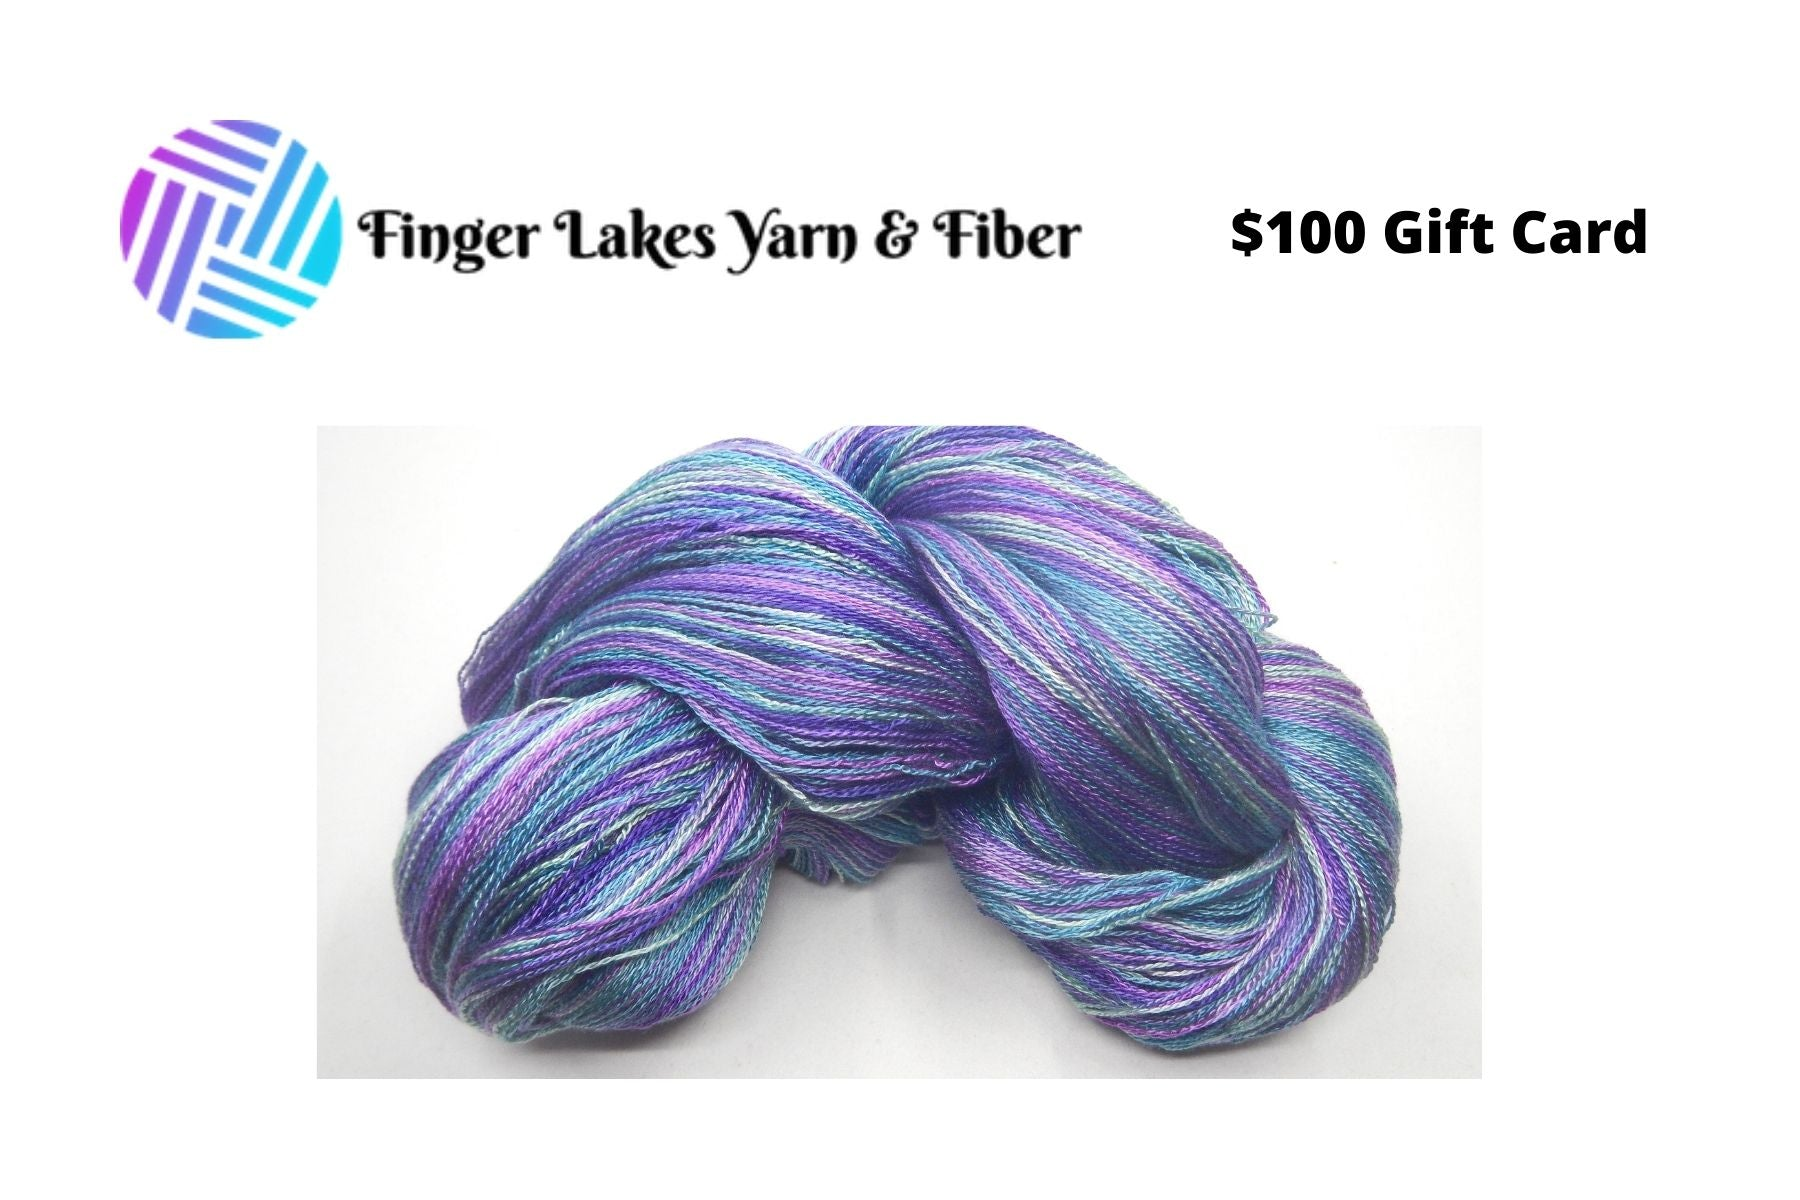 Finger Lakes Yarn & Fiber Gift Card